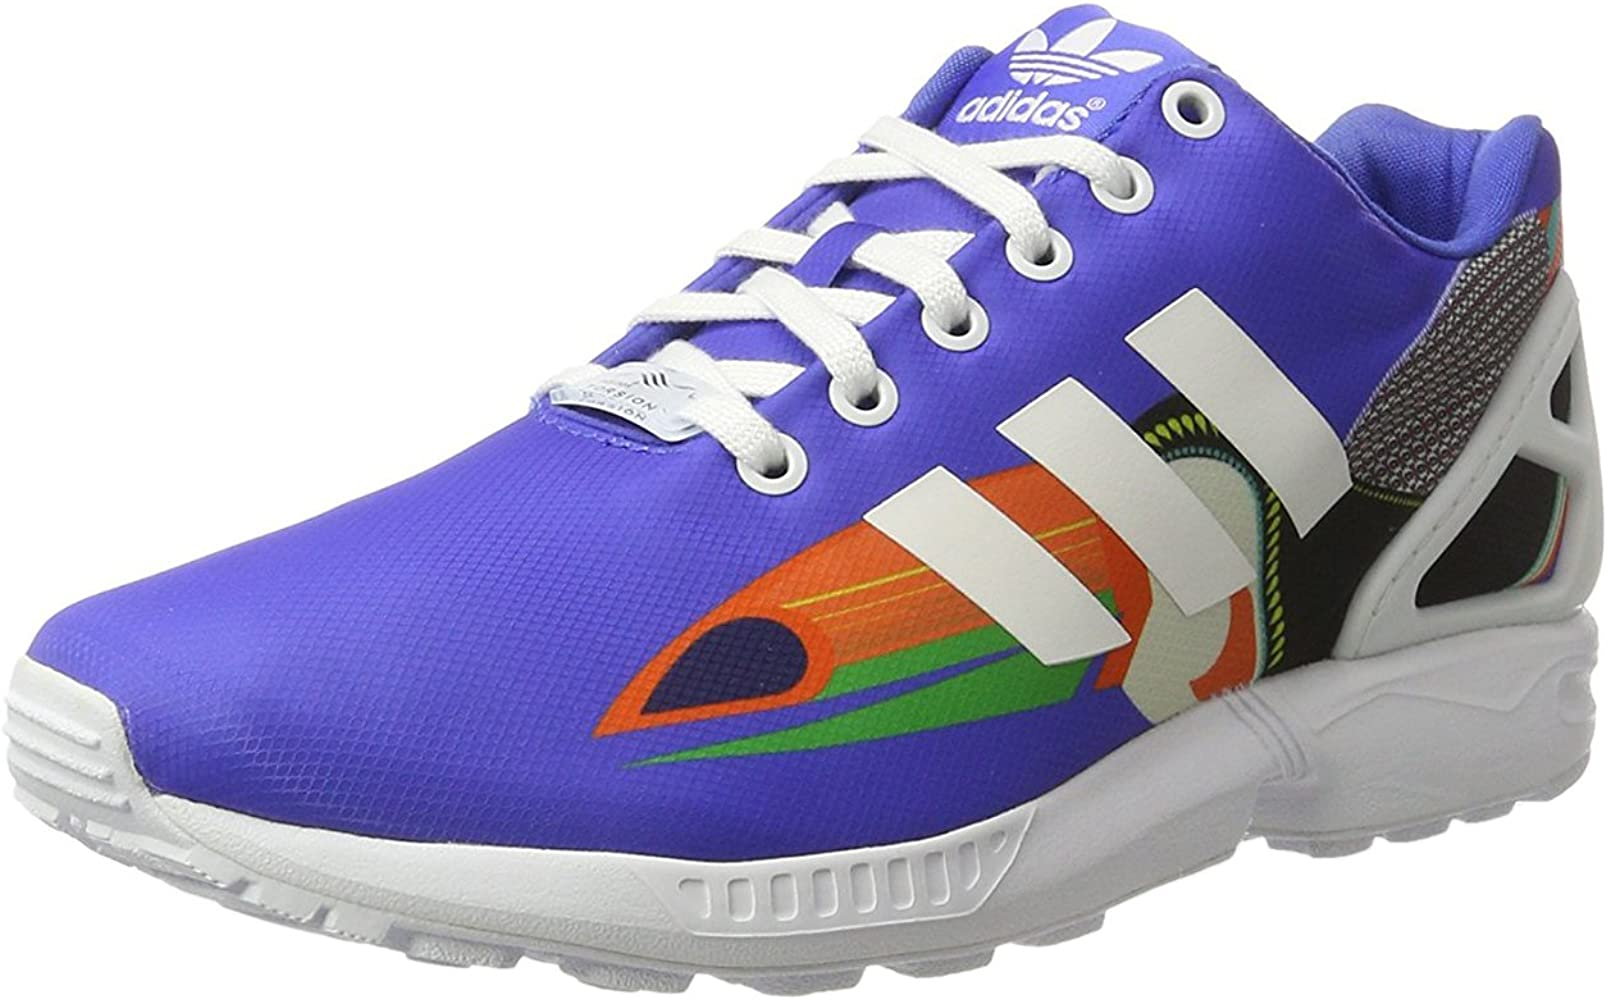 Shoes S75697 Flux Adidas W Sneaker Originals Damen Zx Women m0ywONv8nP